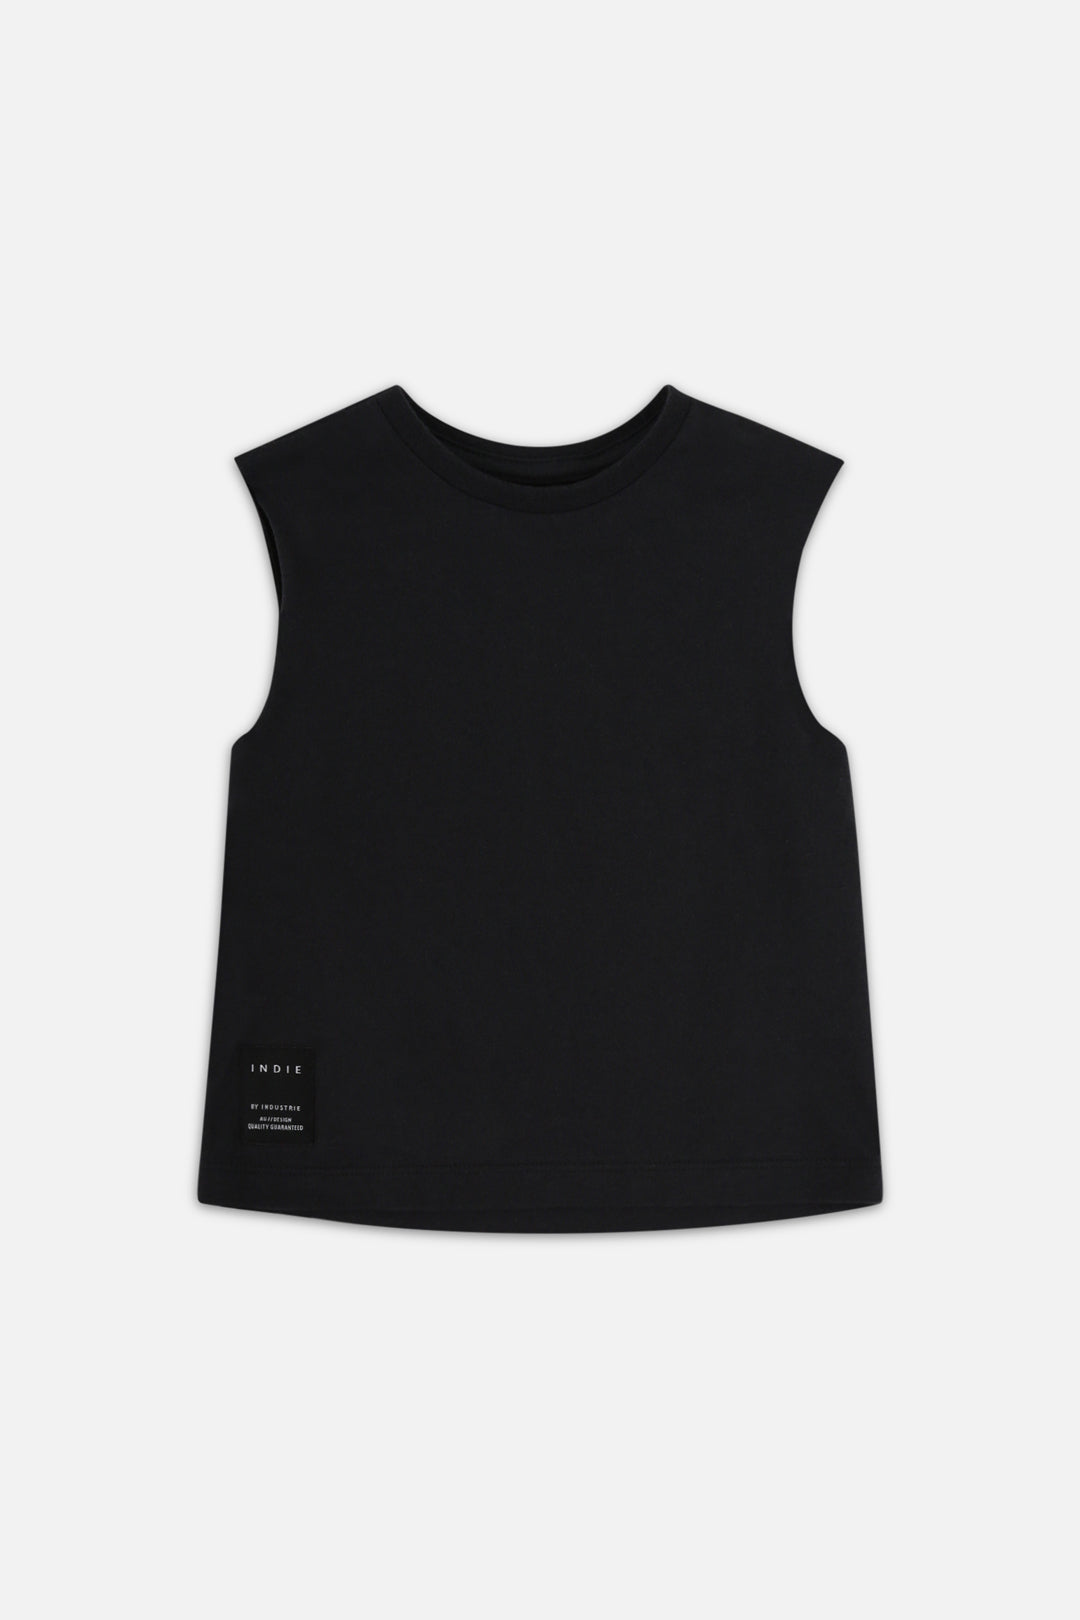 Indie Muscle Tee - Black